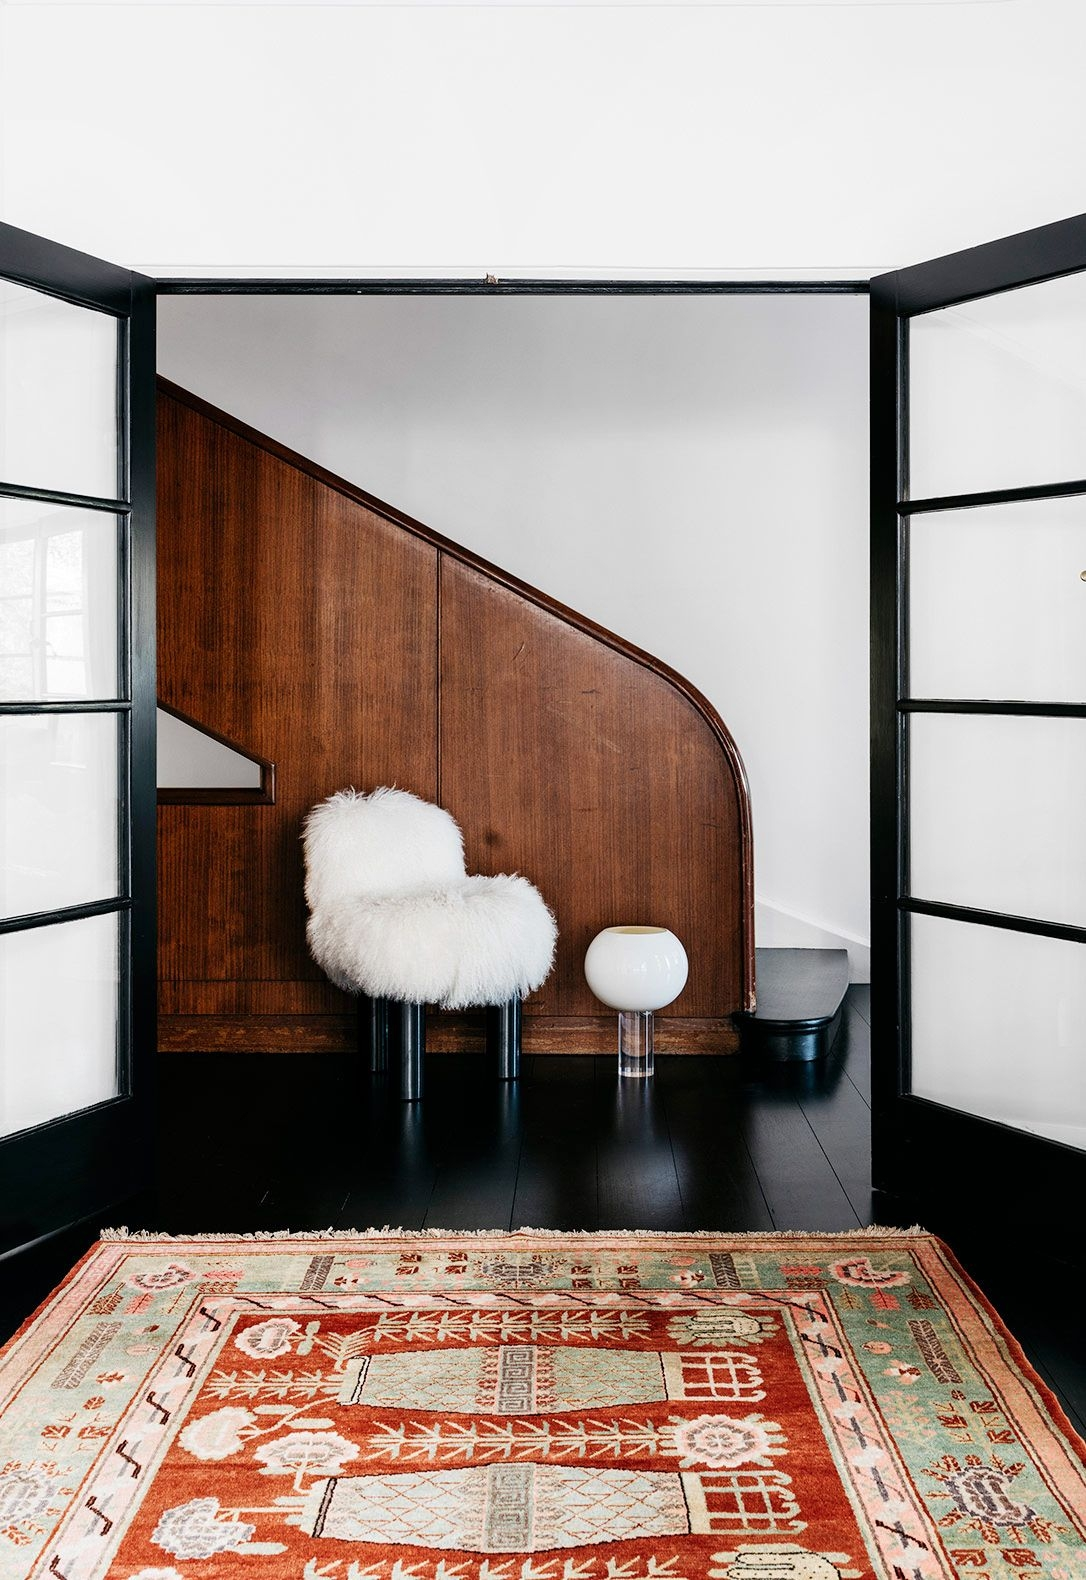 25 Unique Stair Designs Beautiful Stair Ideas For Your House | Inside Home Stairs Design | Light | Small Place | Trendy Home | Low Cost | Drawing Room